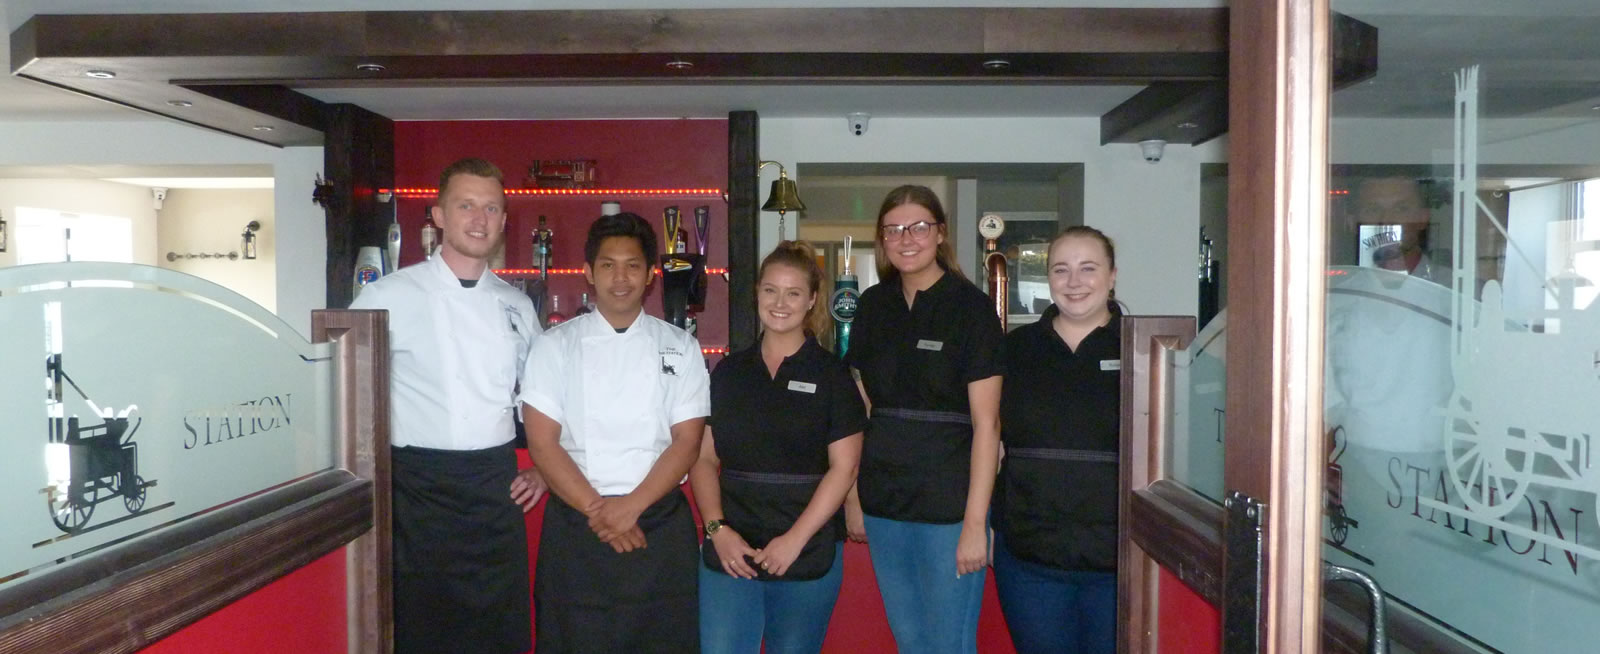 The team at the Station bar in Kirkpatrick Fleming Dumfries and Galloway